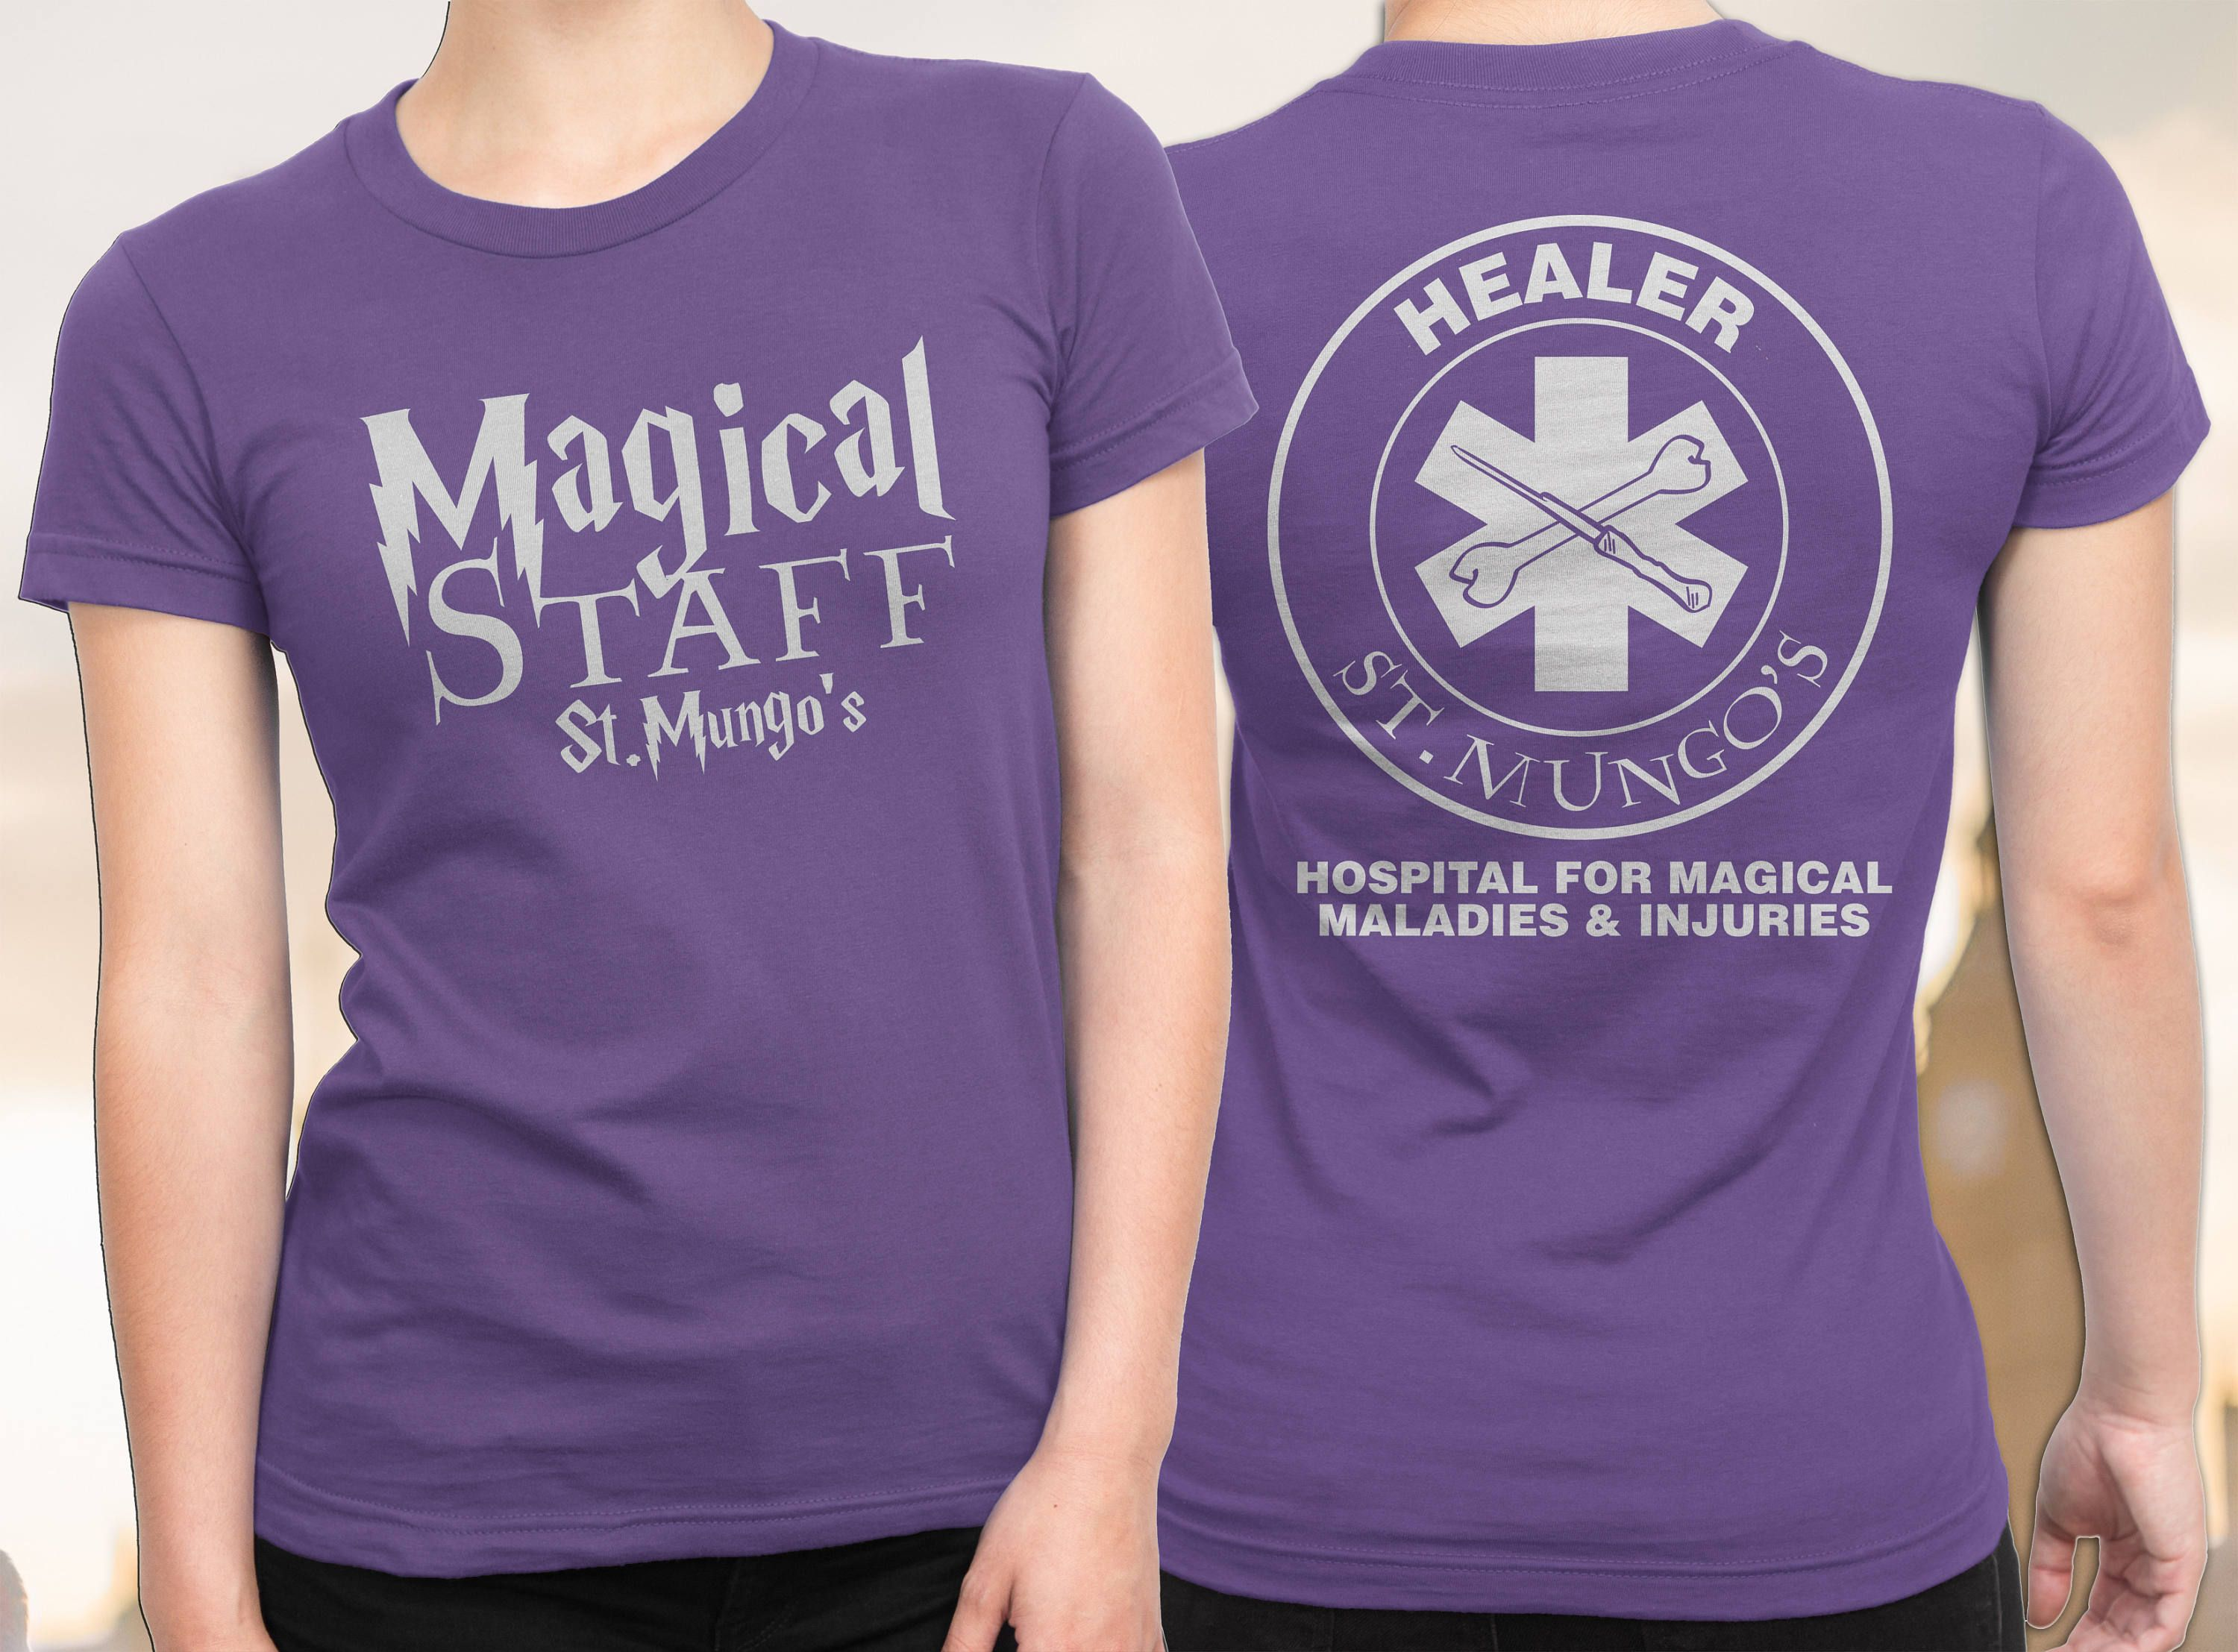 Harry Potter Doctor Free Shipping Nurse Harry Potter Shirt St Mungo S Hospital For Magical Maladies A Harry Potter Shirts Nursing Shirts Harry Potter Tshirt